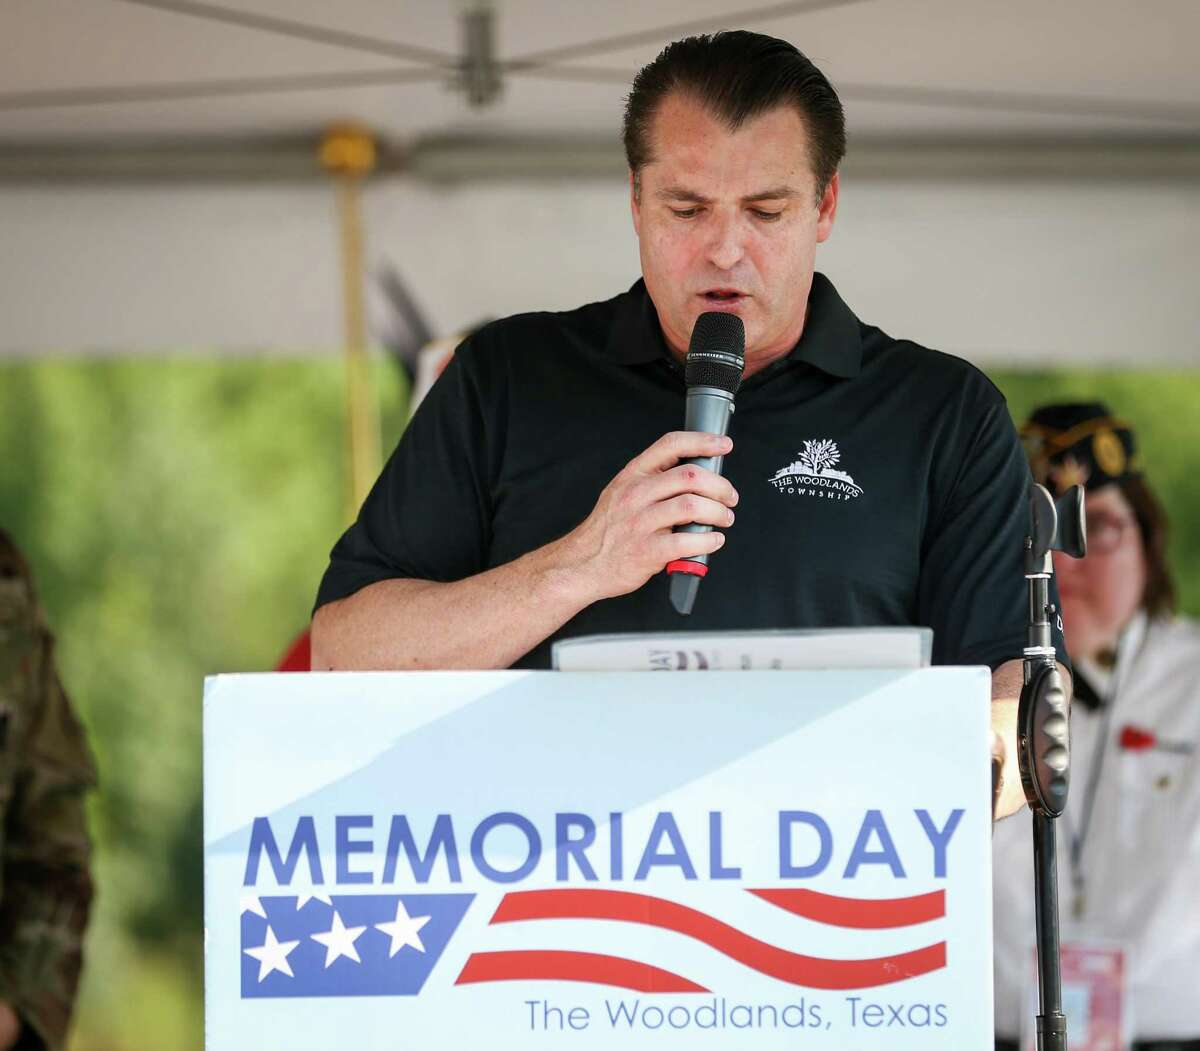 The Woodlands Township Chairman Gordy Bunch speaks during the Memorial Day Festival on Sunday, May 27, 2018, at Town Green Park in The Woodlands. This year's event is from 5-9 p.m. at Town Green Park, 2099 Lake Robbins Drive. Attendees can celebrate the military and honor service members who lost their lives for the United States with a community celebration capped off by a fireworks show.